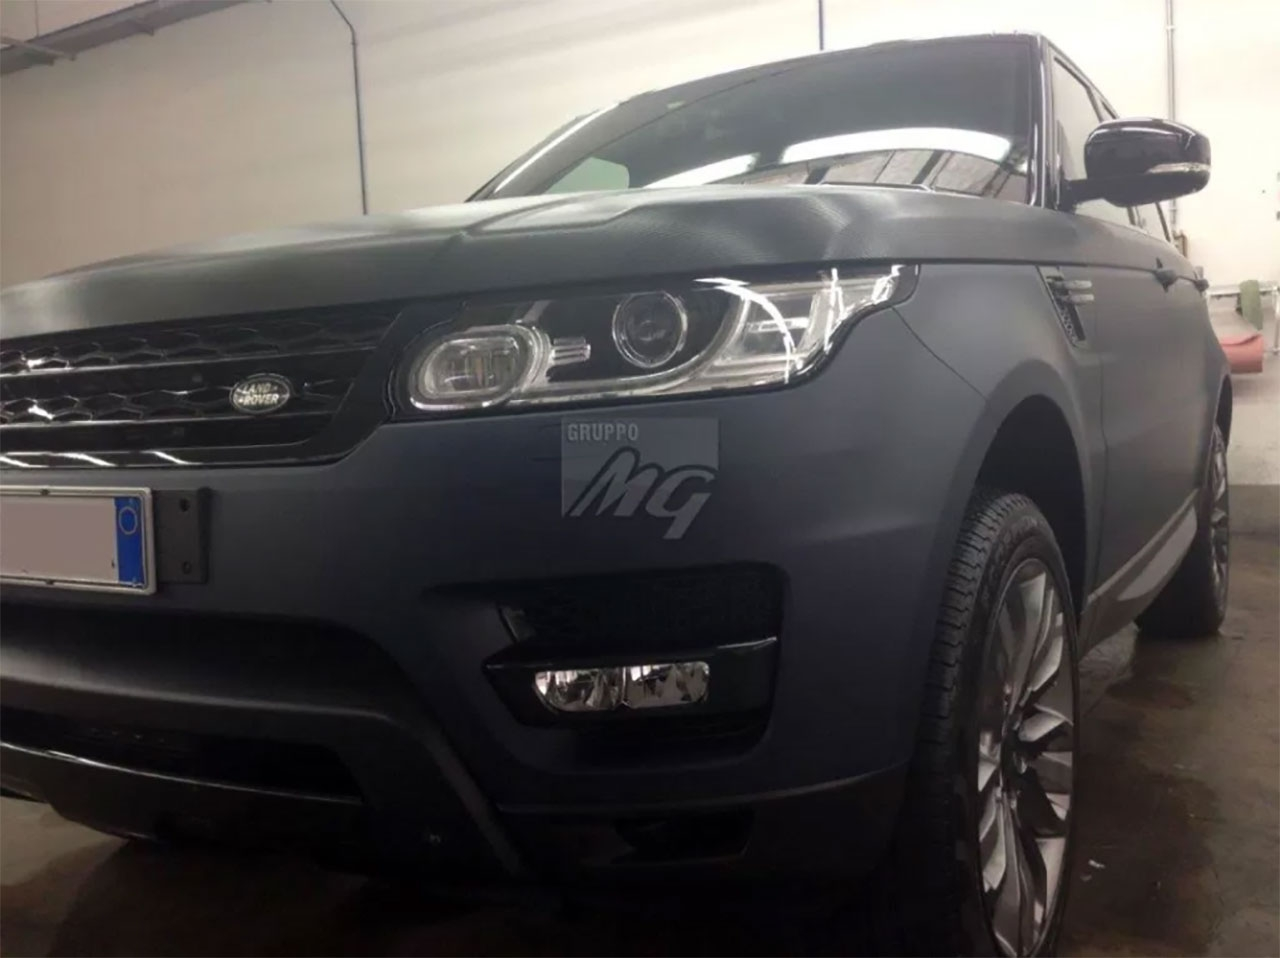 NUOVO RANGE ROVER SPORT – WRAPPING AUTO BLU OPACO